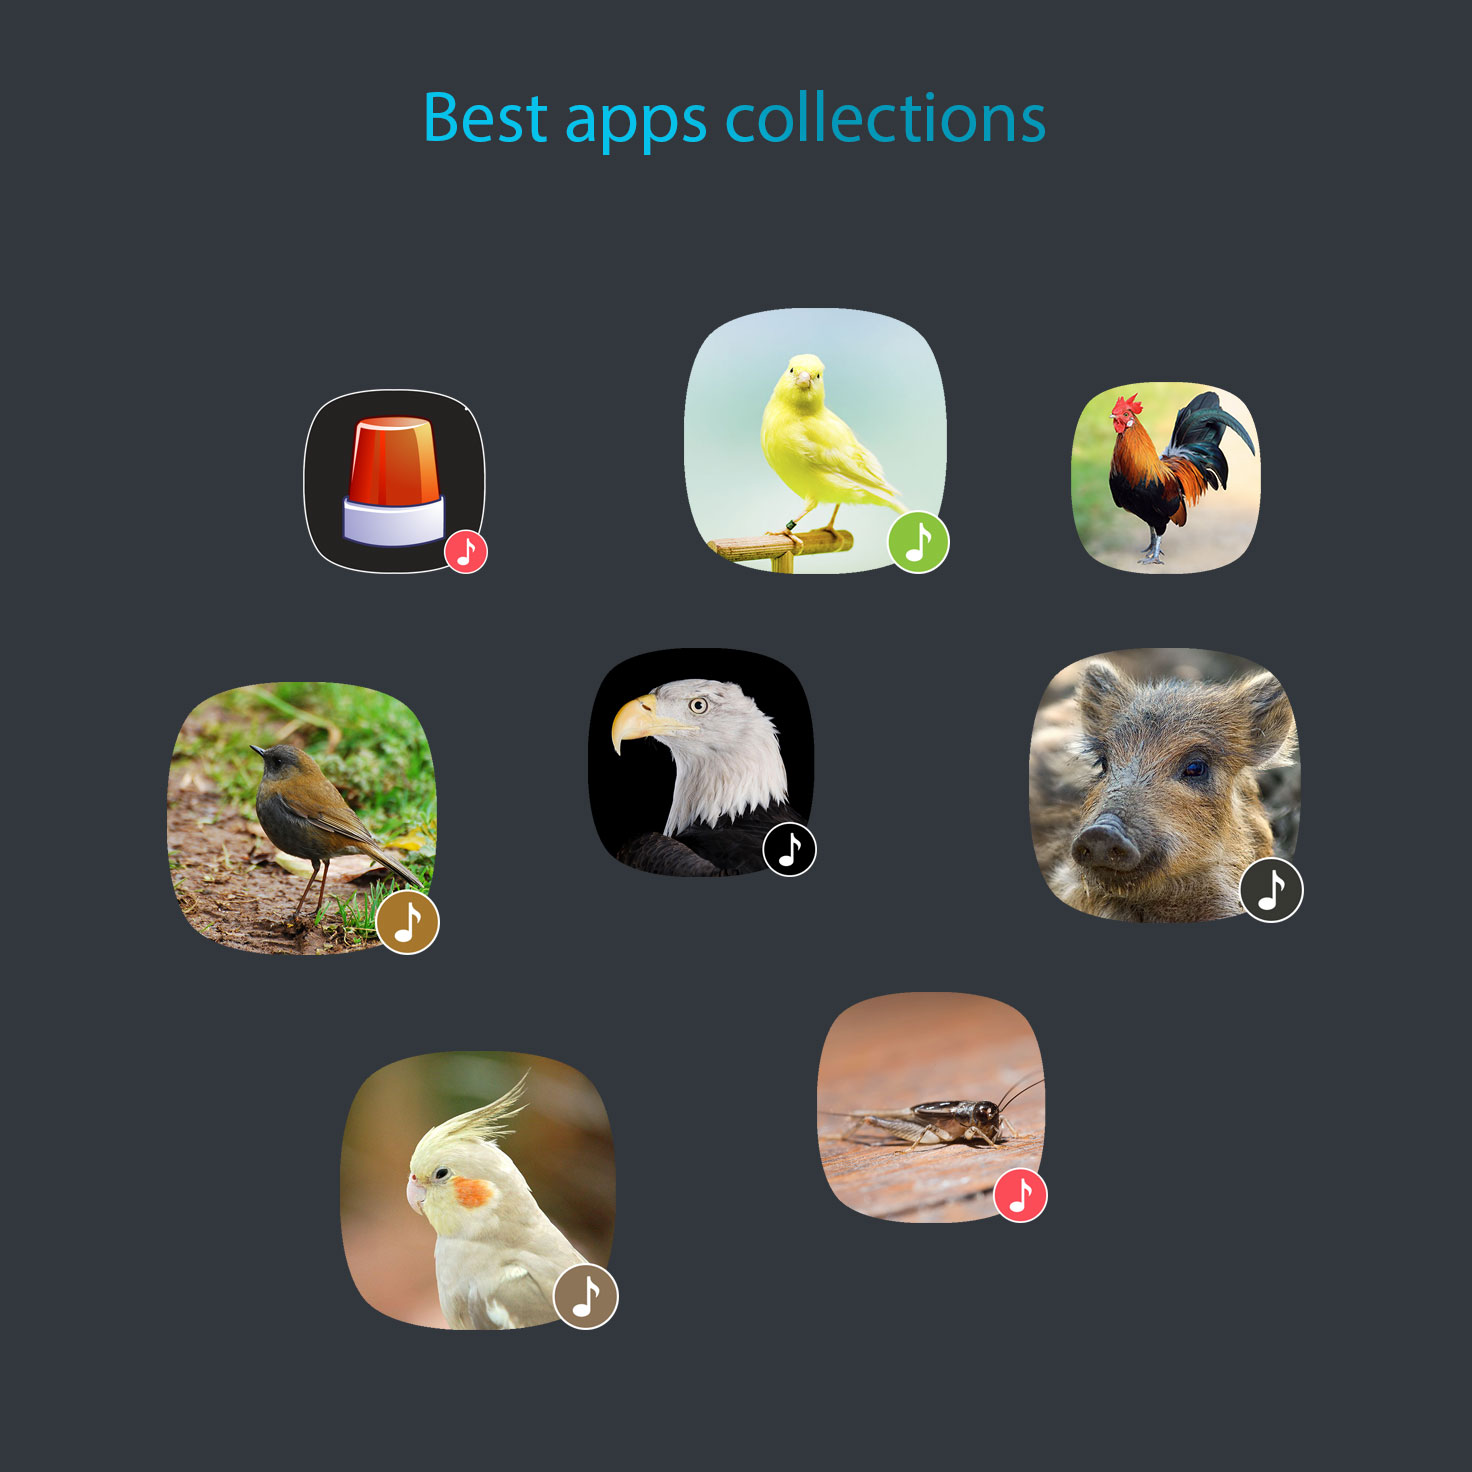 Best apps collections